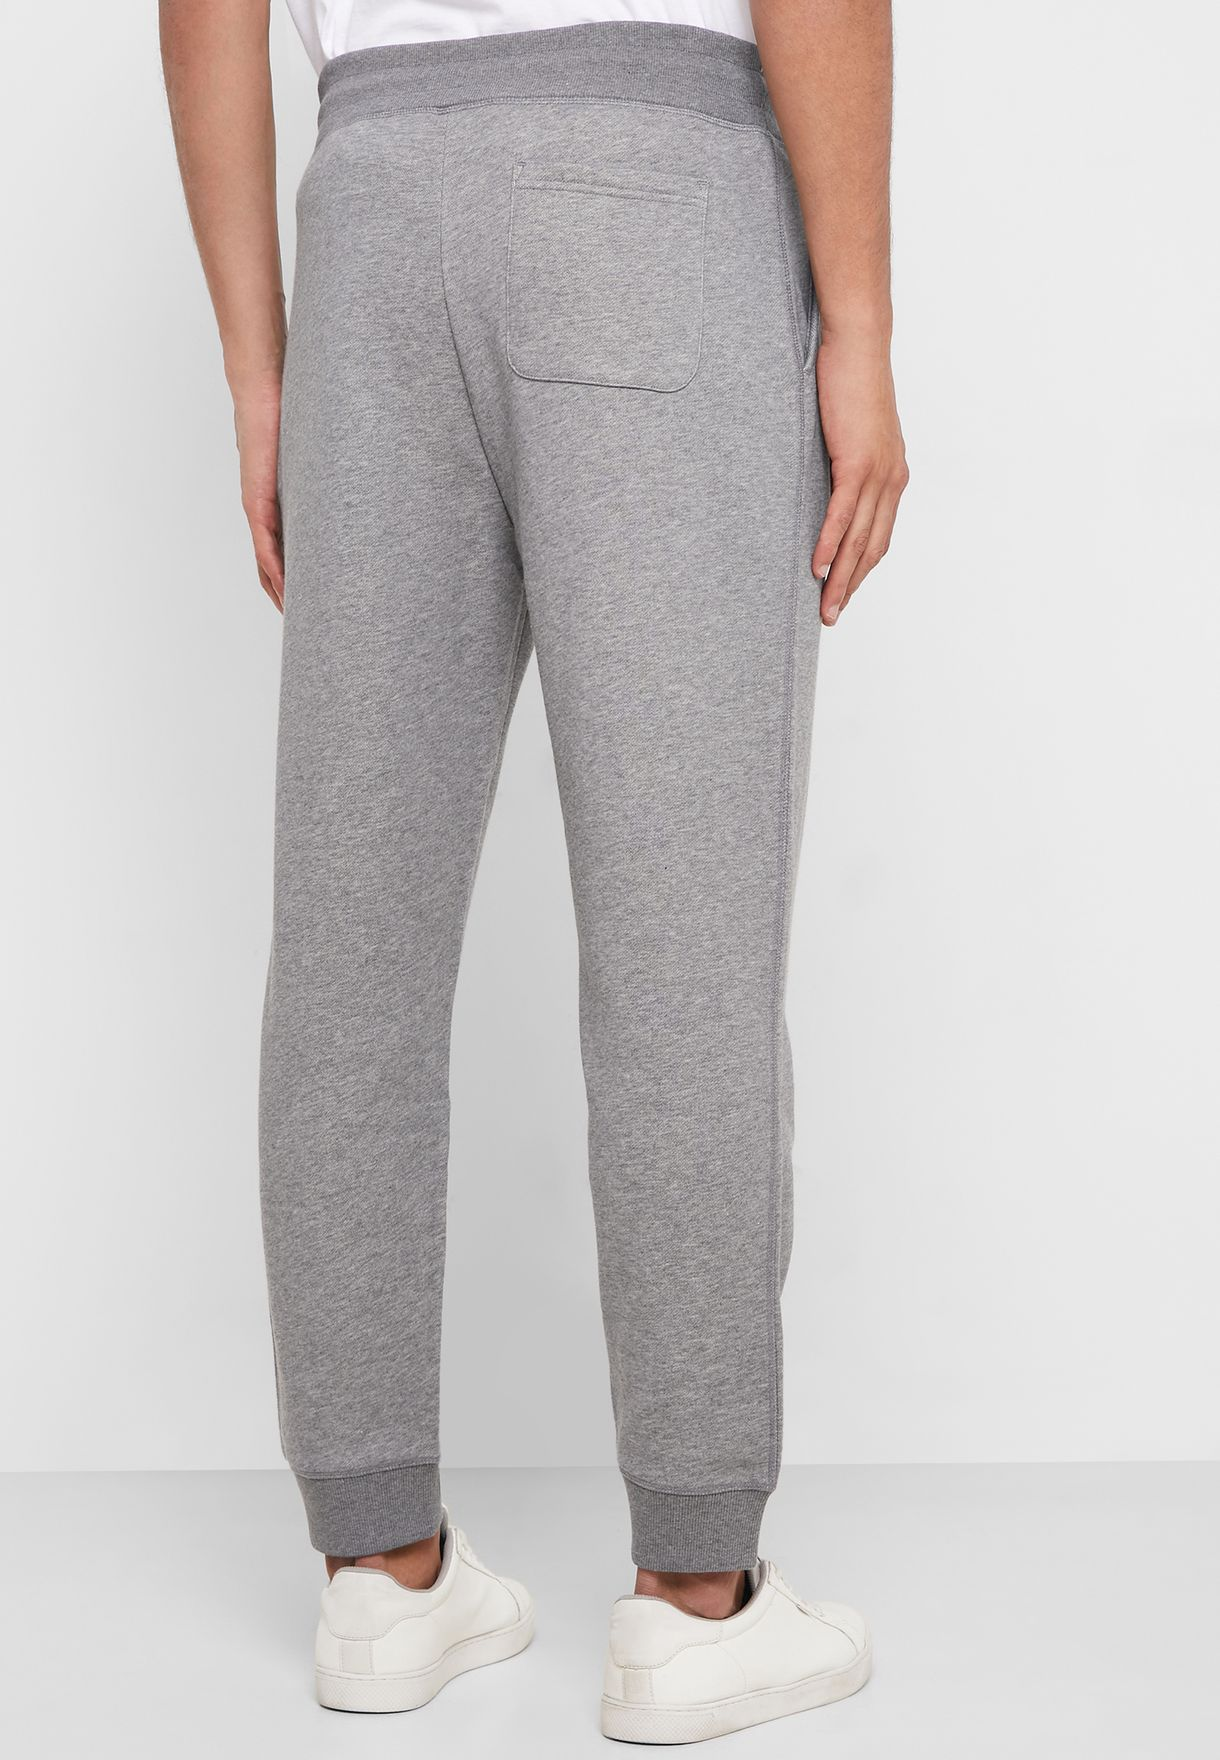 Gant Cuffed Sweatpants - Fashion